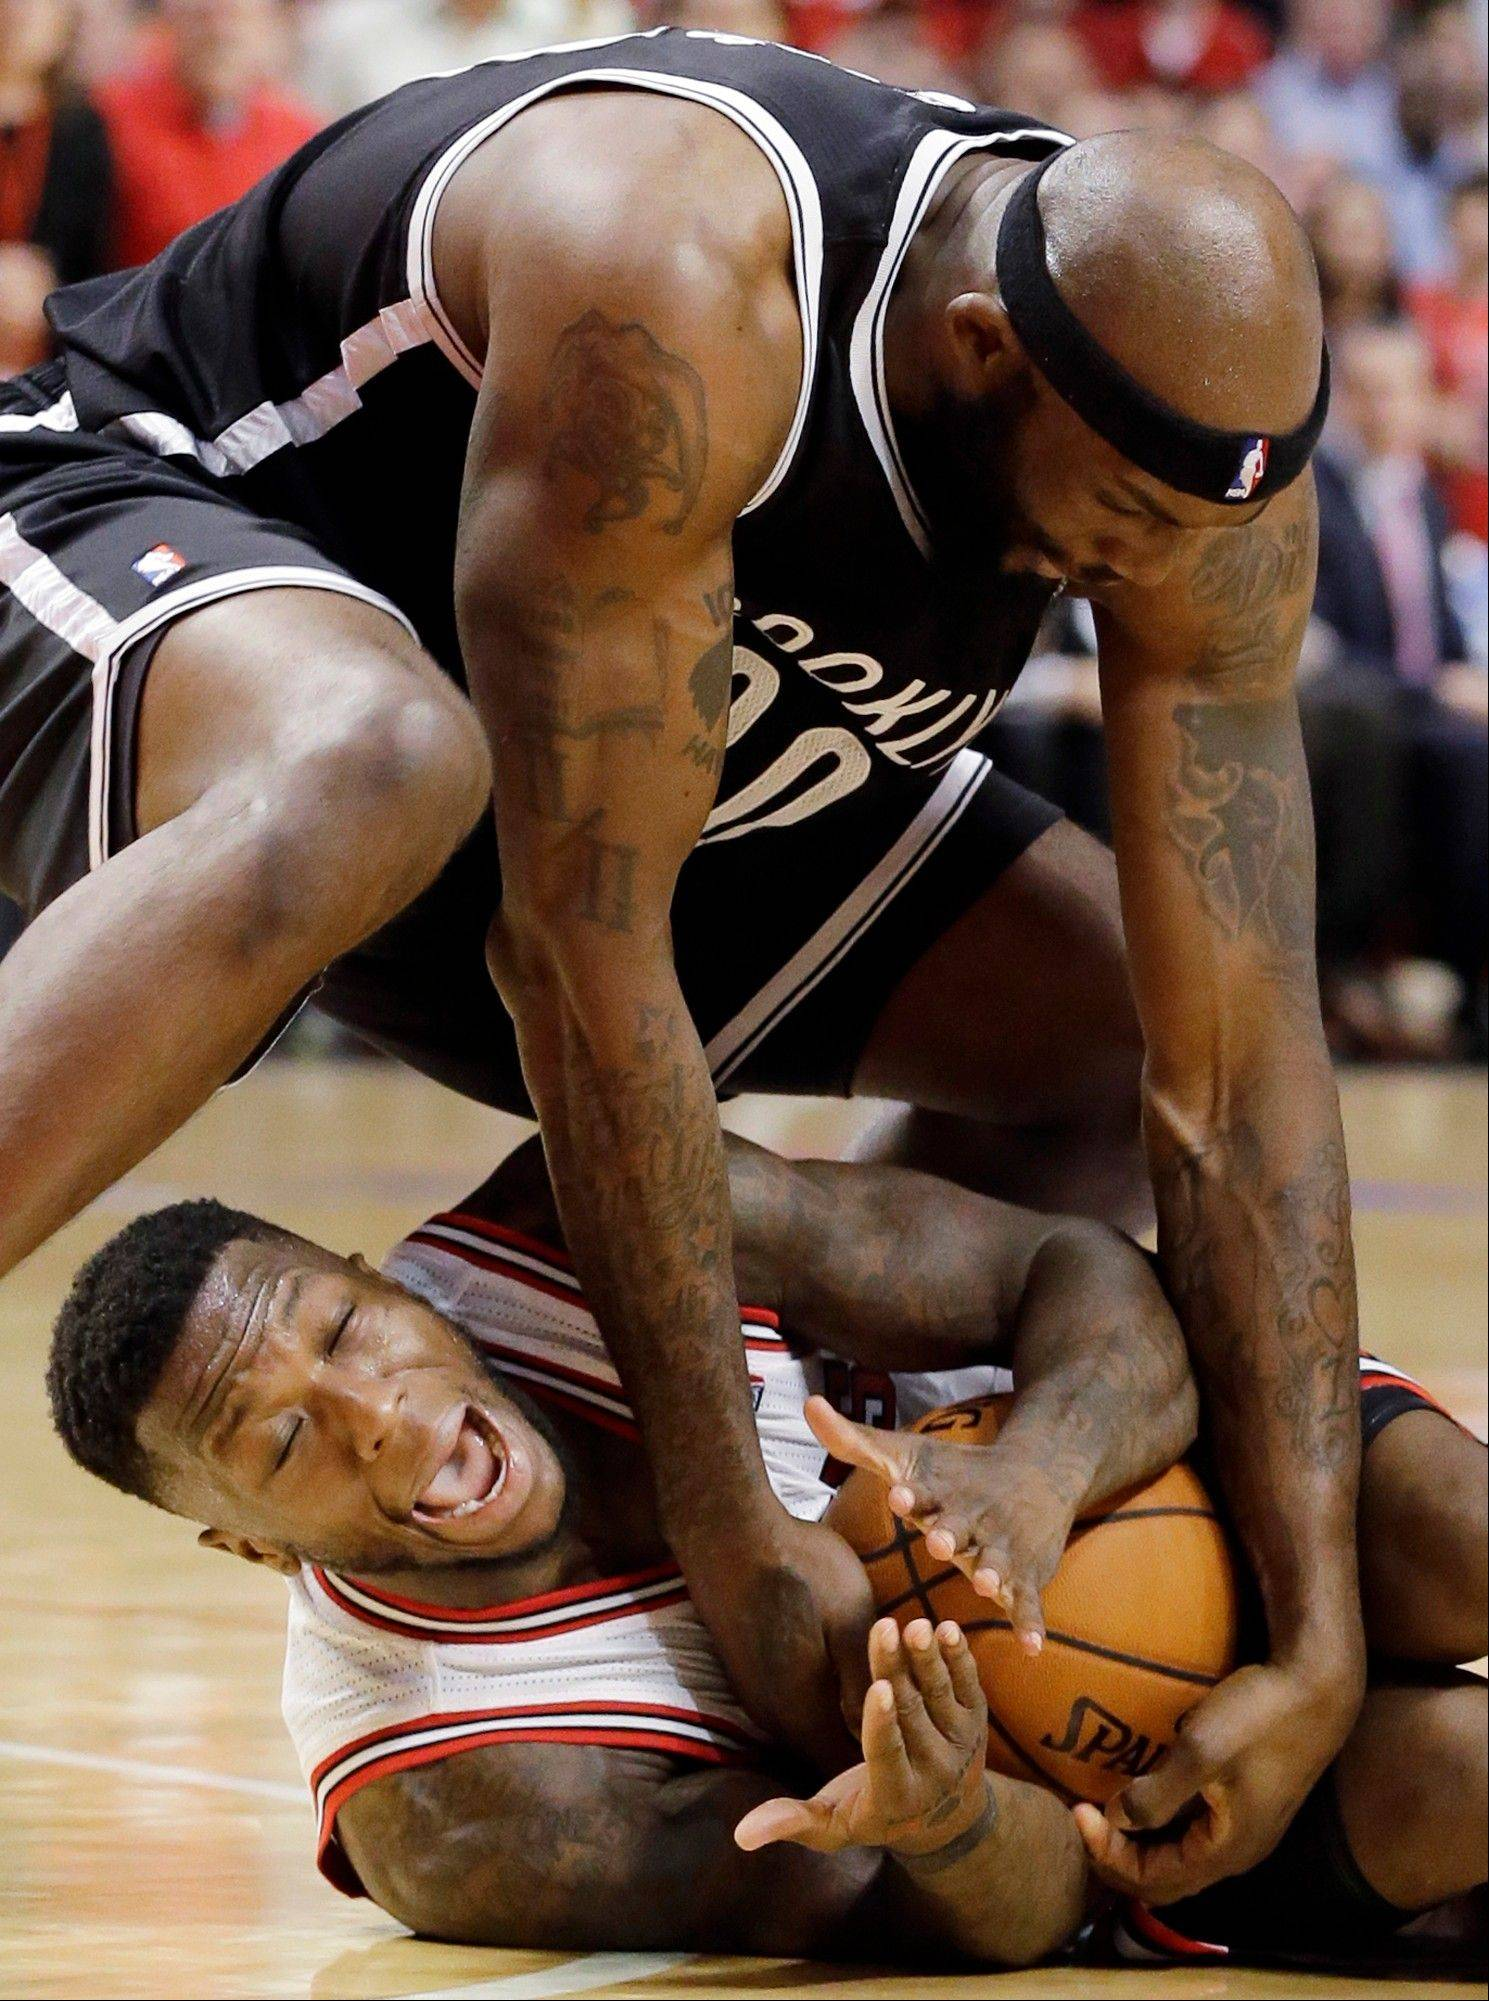 Brooklyn Nets forward Reggie Evans, top, and Chicago Bulls guard Nate Robinson battle for a loose ball during the second half in Game 6 of their first-round NBA basketball playoff series in Chicago, Thursday, May 2, 2013. The Nets won 95-92.